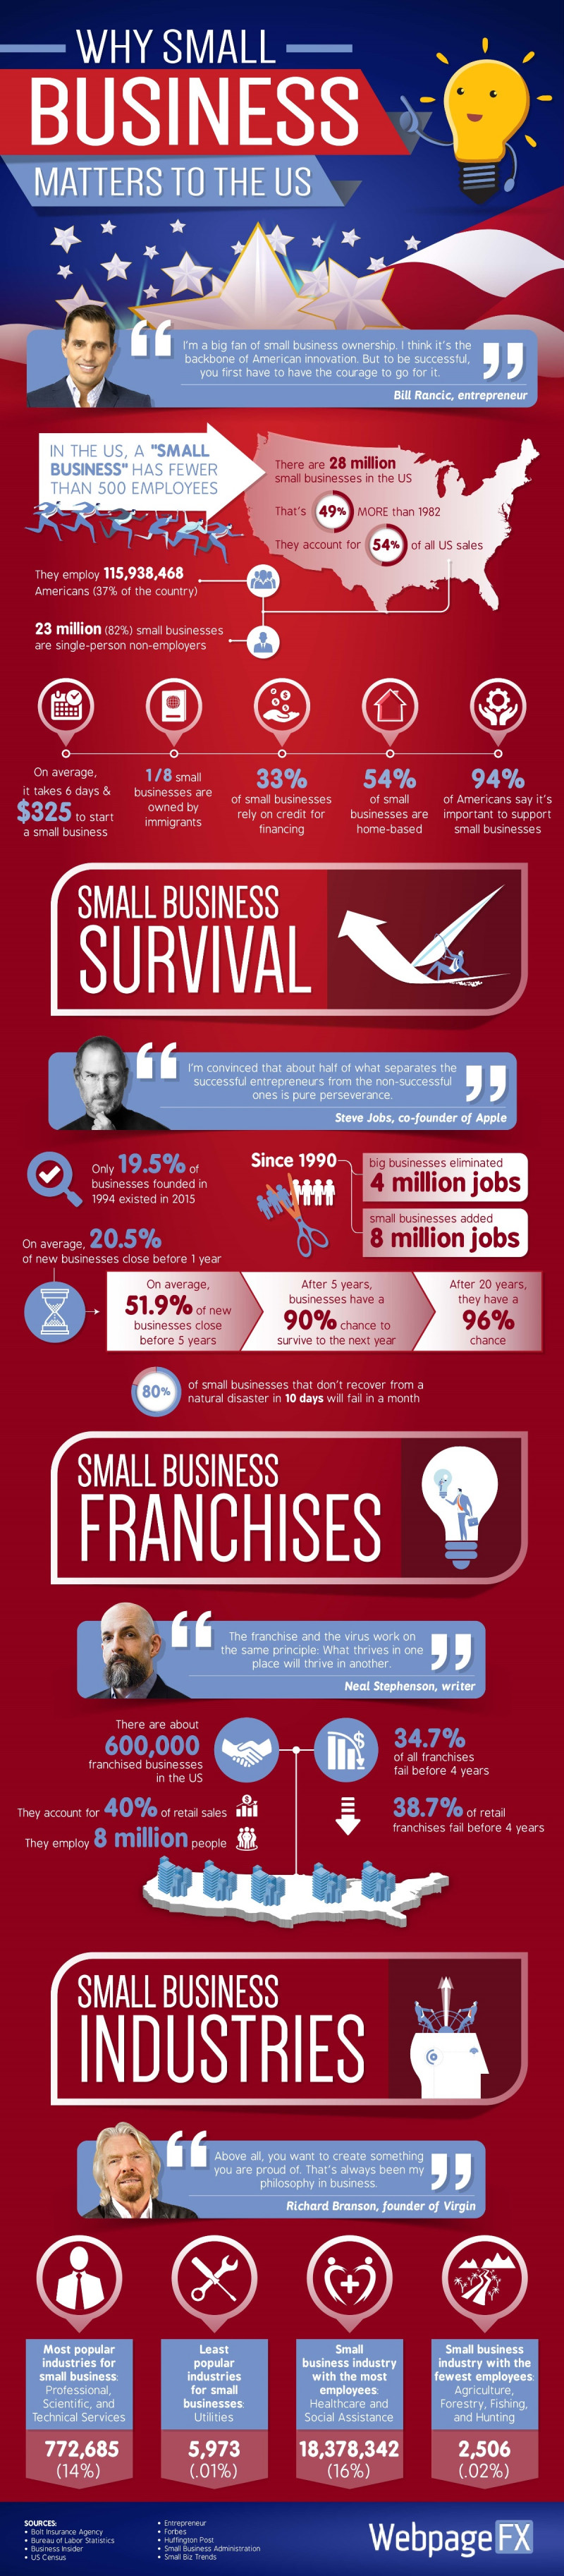 Why Small Business Matters to the US